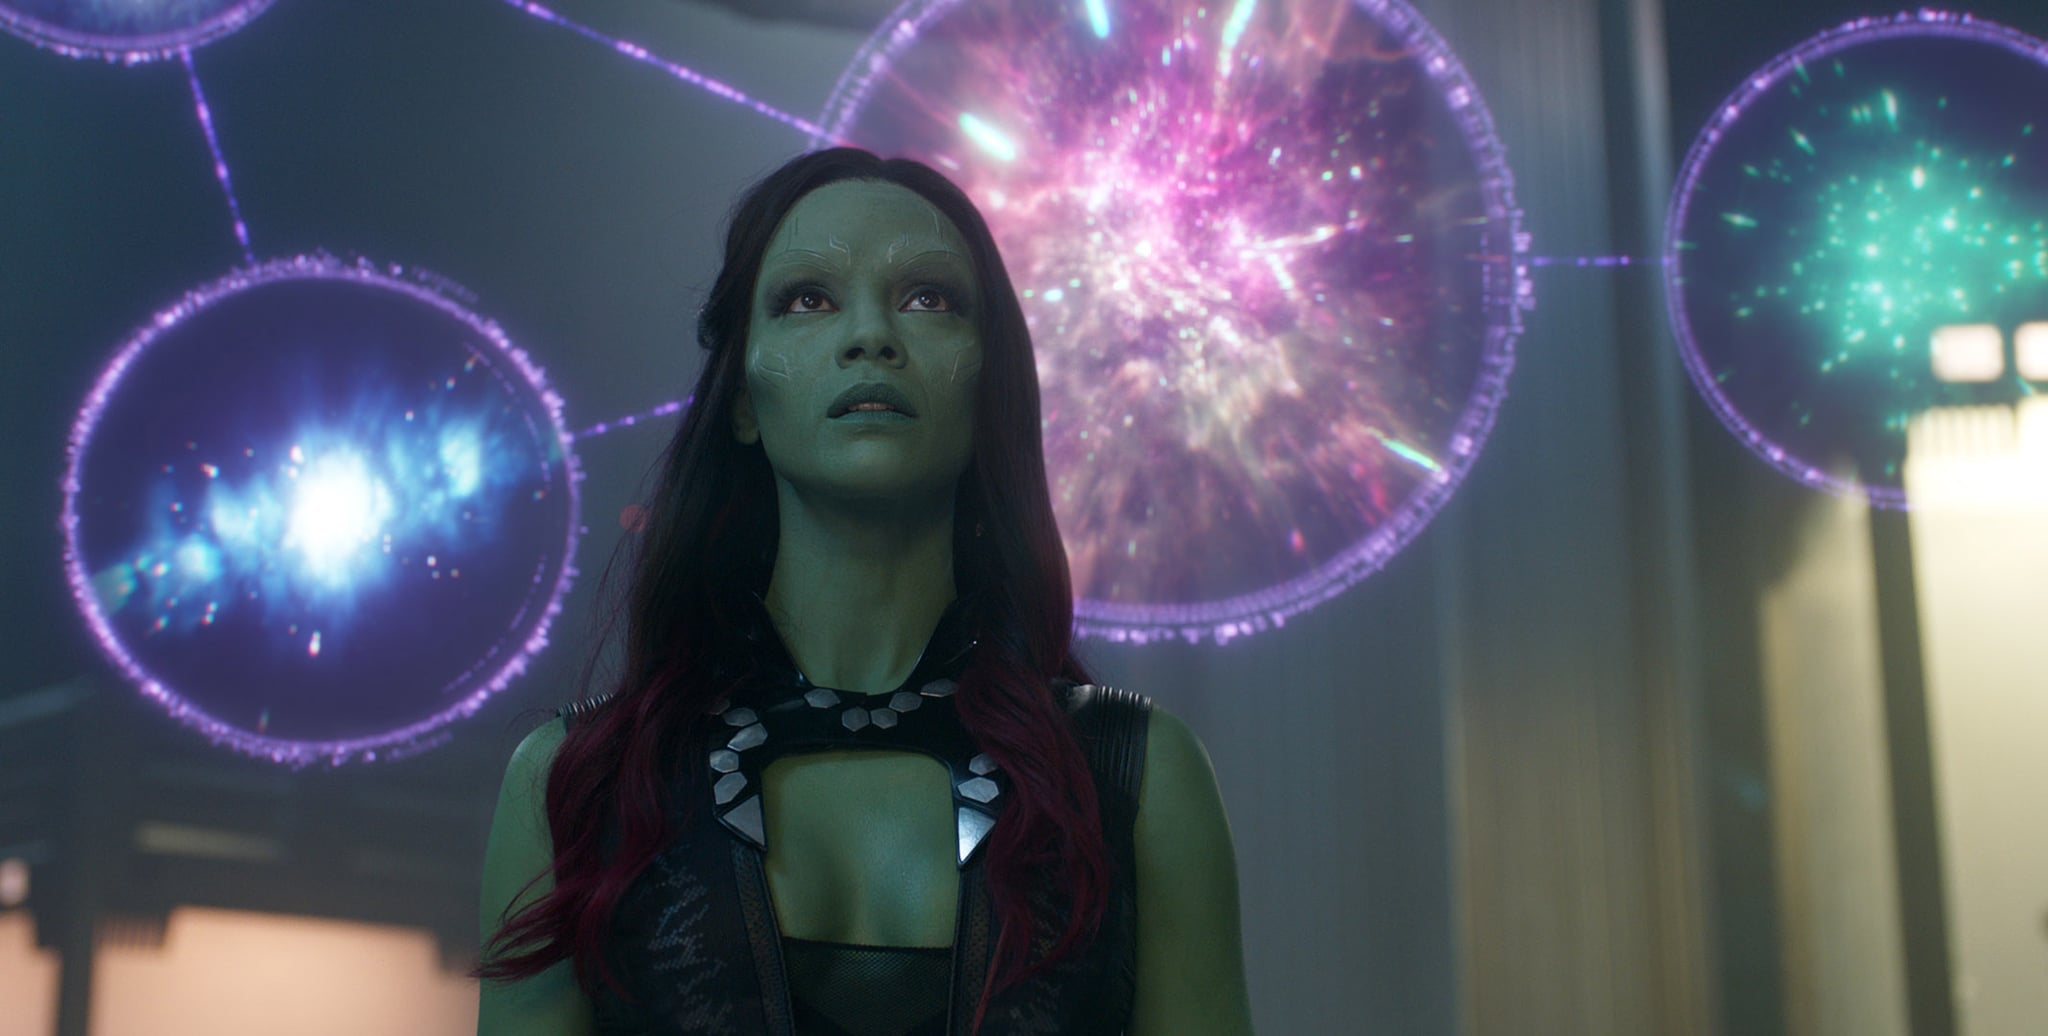 GUARDIANS OF THE GALAXY, Zoe Saldana, 2014. Walt Disney Studios Motion Pictures/Courtesy Everett Collection